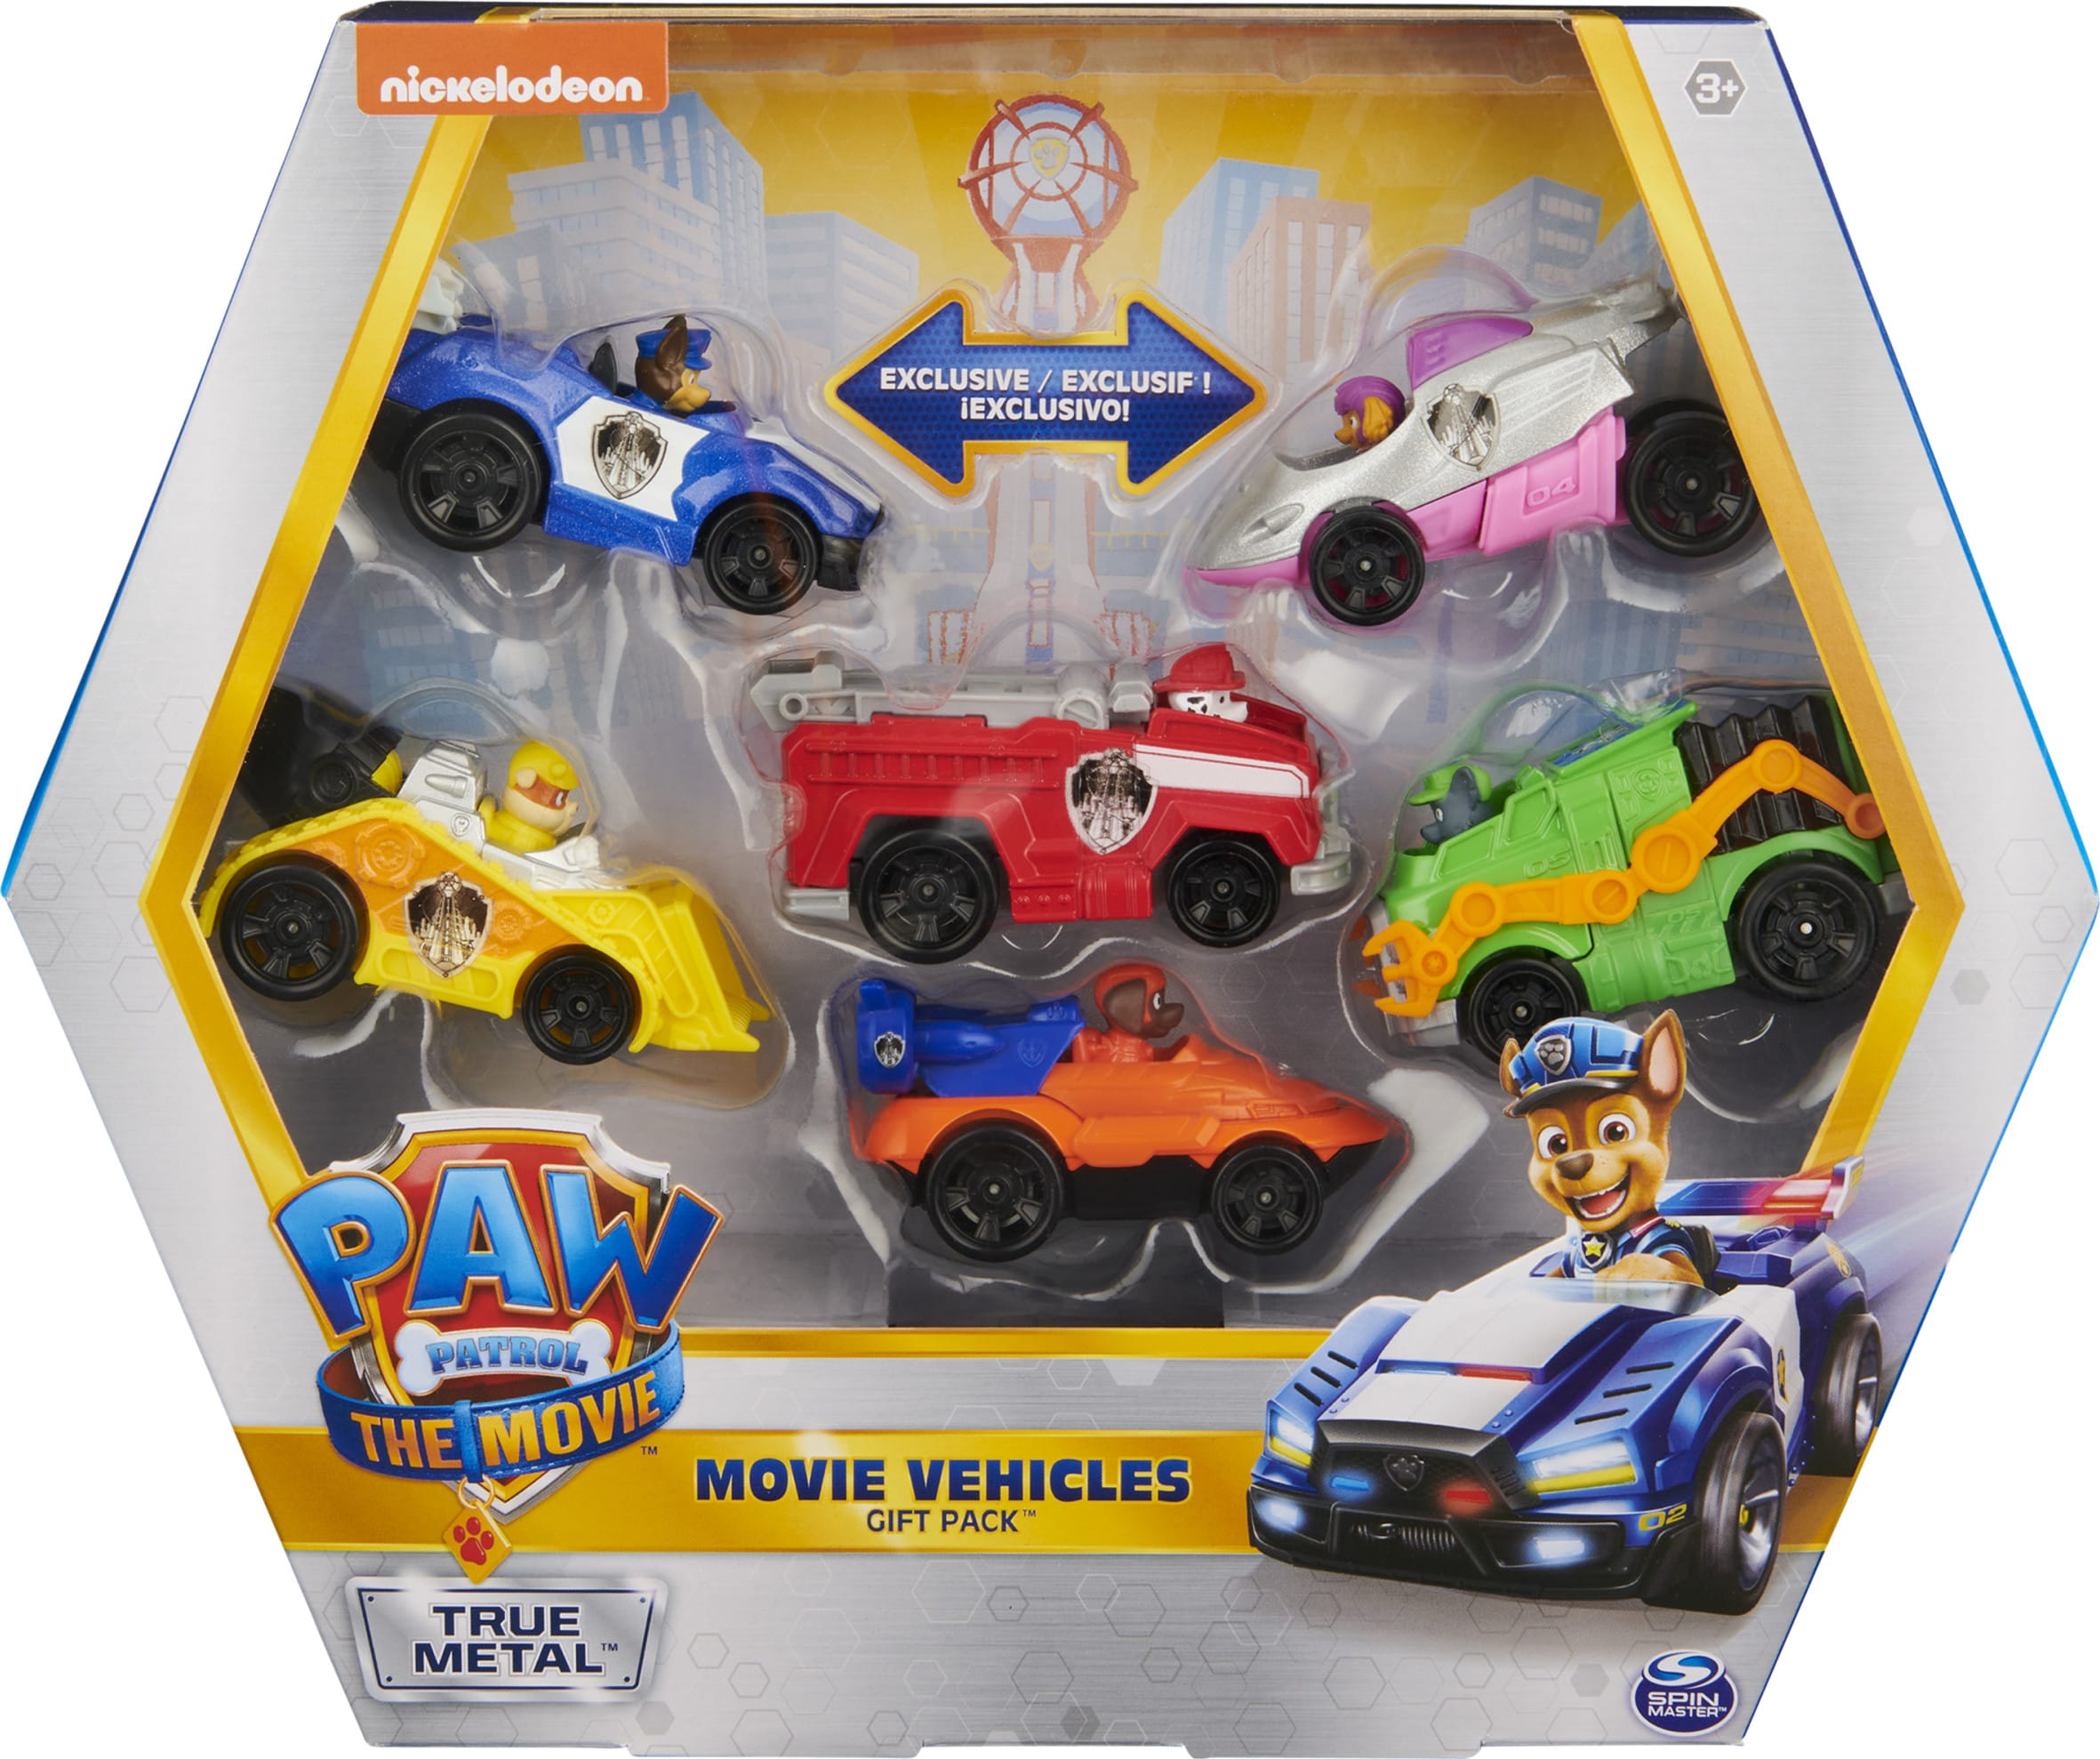 Discover Spin Master Ltd's PAW Patrol: The Movie cars at Walmart.